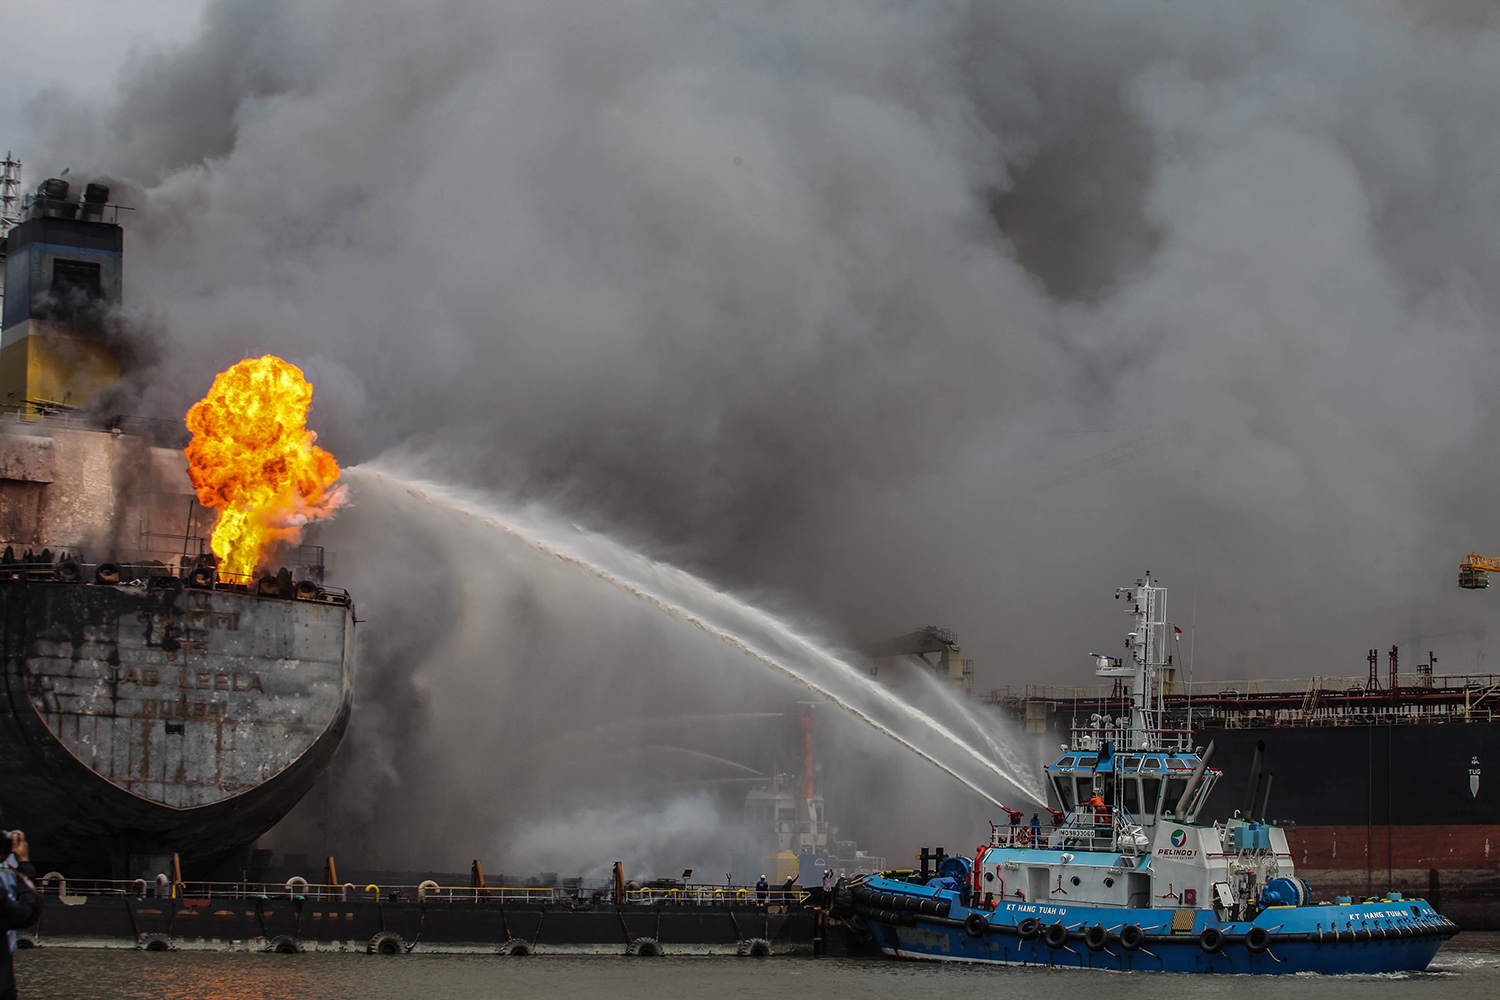 Firefighters onboard a vessel try to extinguish a fire on a tanker ship docked in Belawan, Indonesia, on May 11. IVAN DAMANIK/AFP via Getty Images